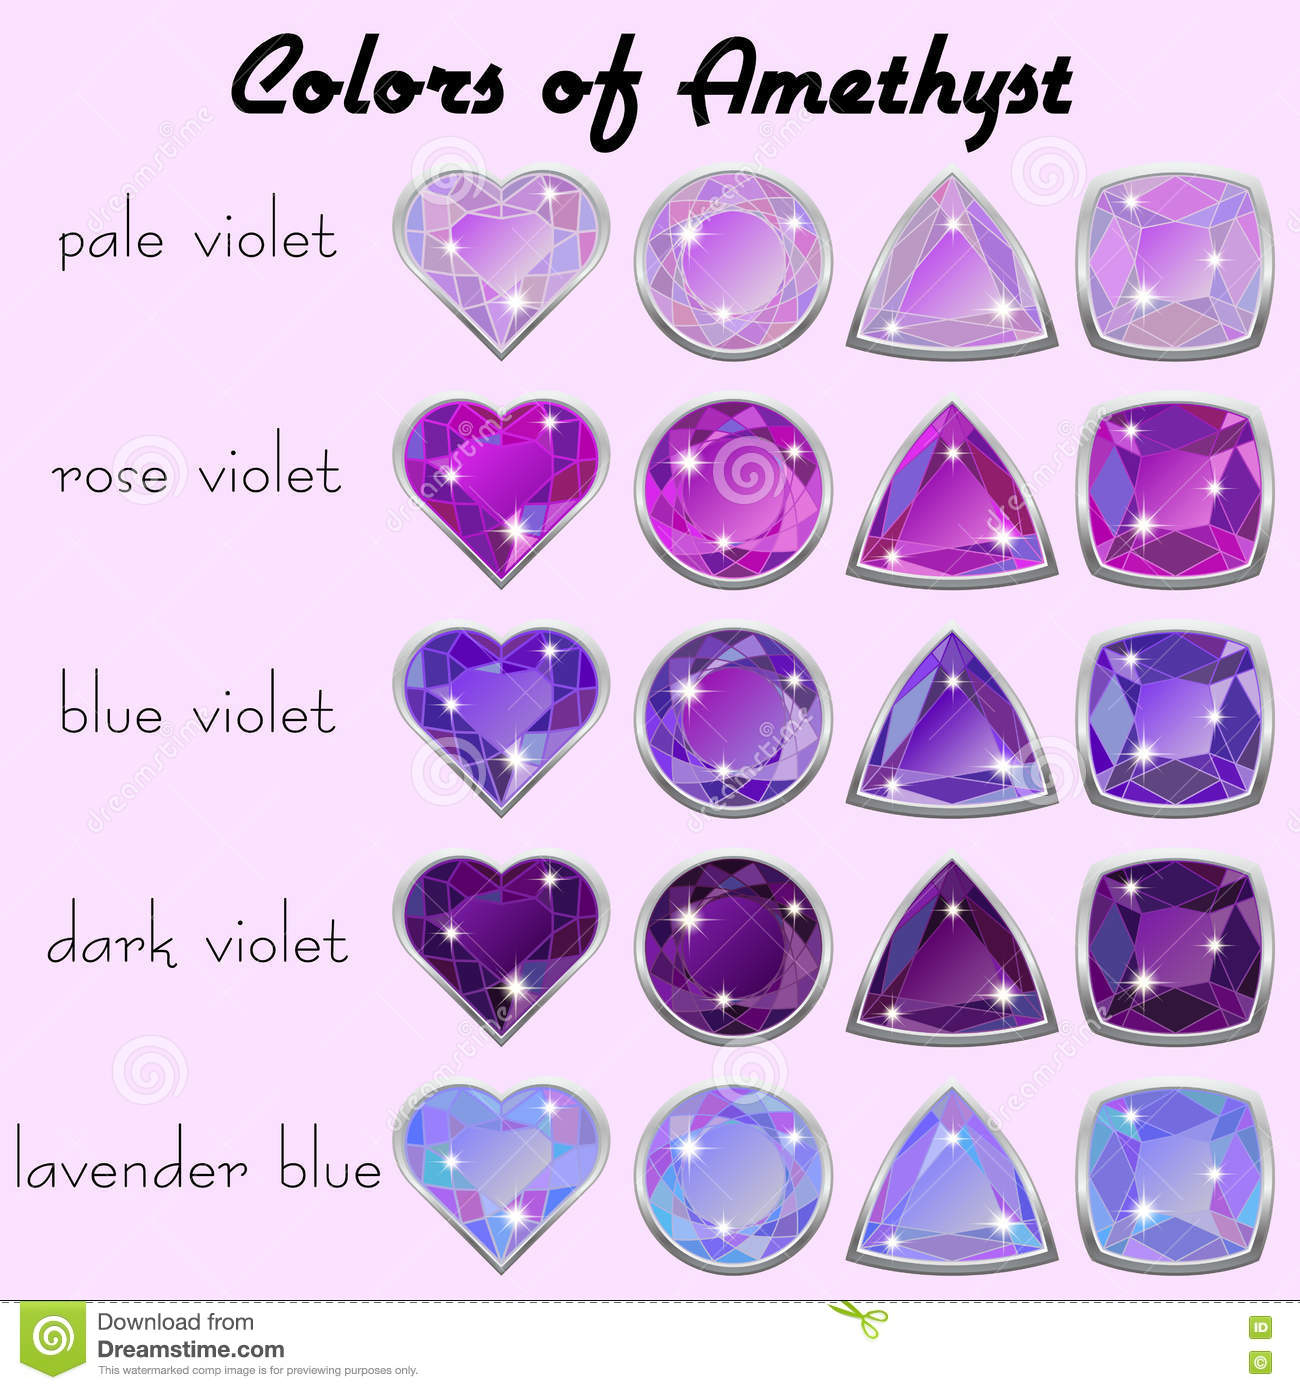 colors of amethyst stock vector illustration of different